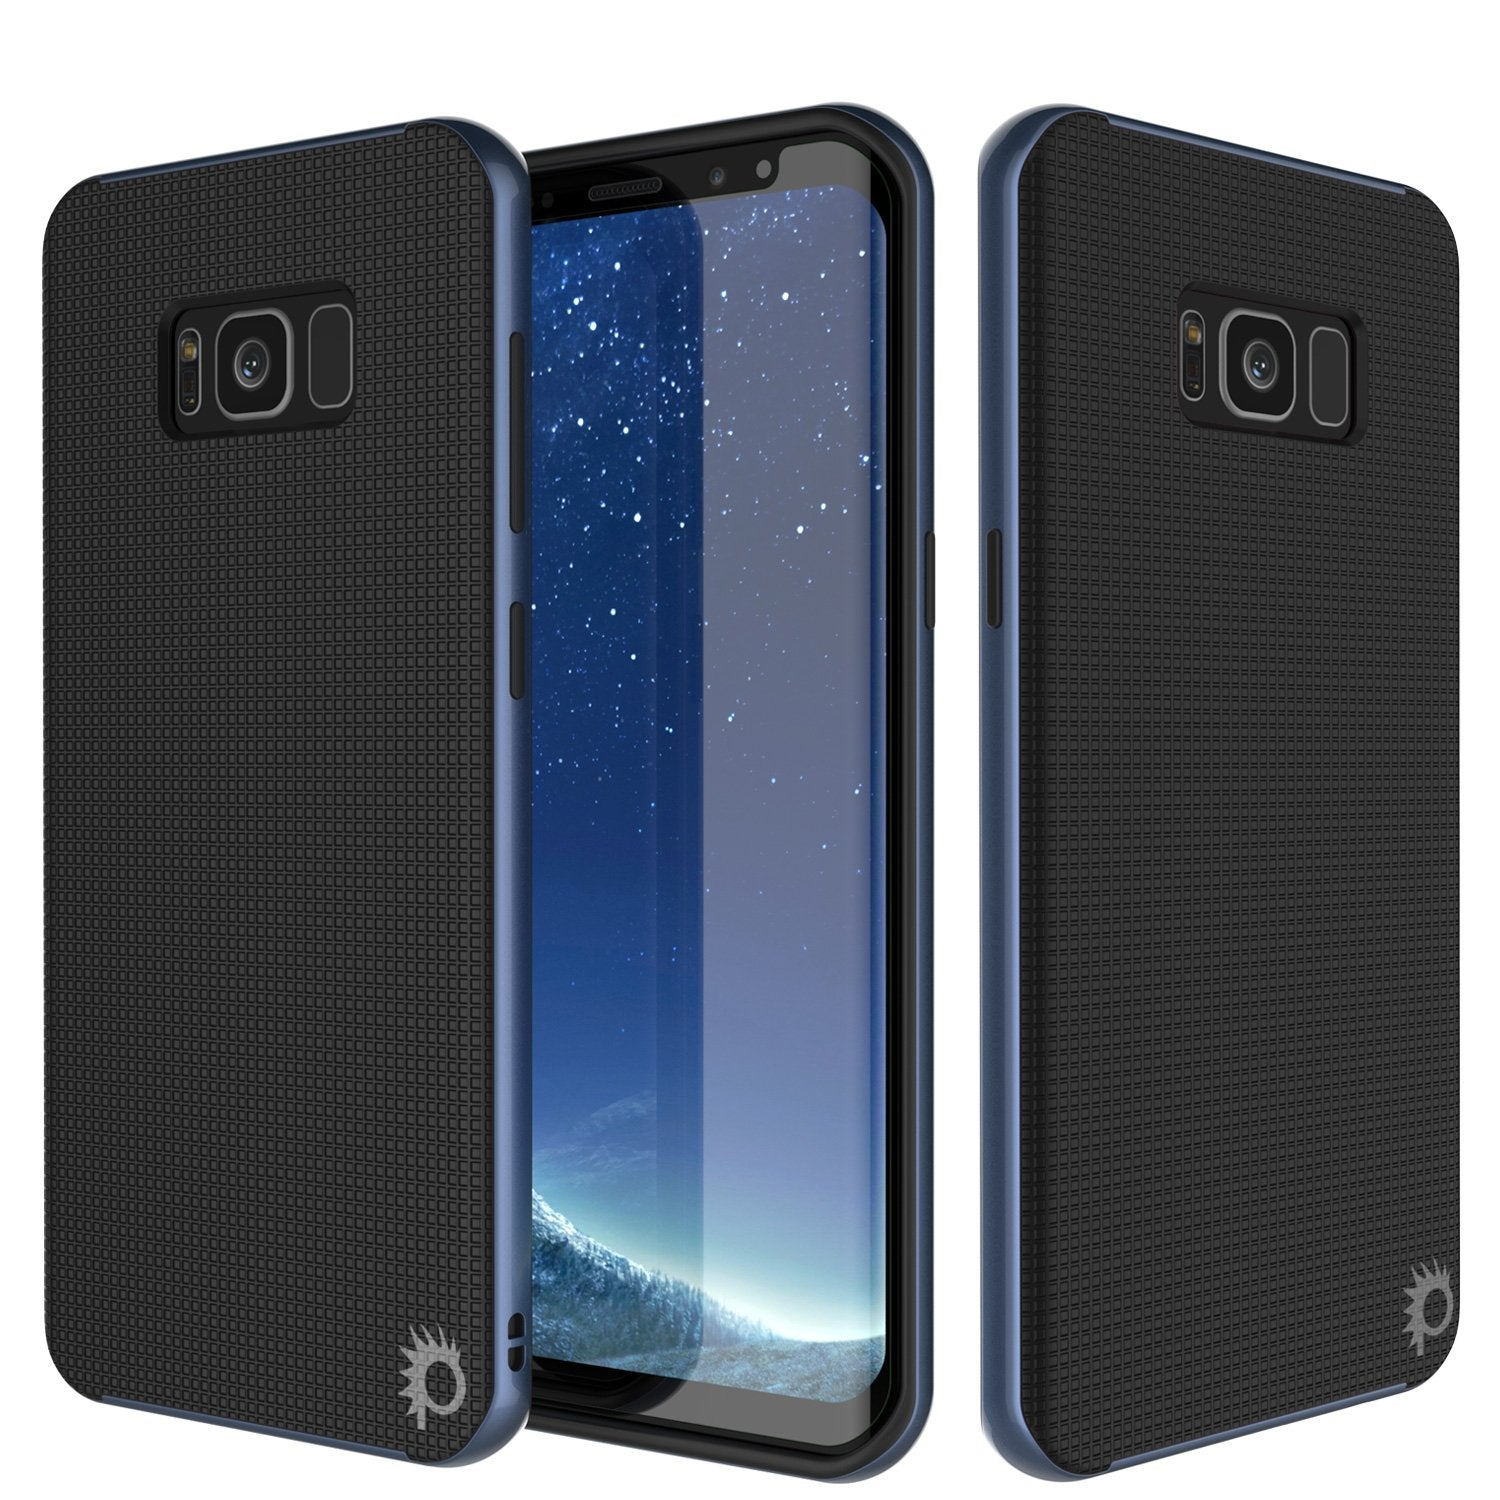 Galaxy S8 PLUS Case, PunkCase [Stealth Series] Hybrid 3-Piece Shockproof Dual Layer Cover [Non-Slip] [Soft TPU + PC Bumper] with PUNKSHIELD Screen Protector for Samsung S8+ [Navy Blue]